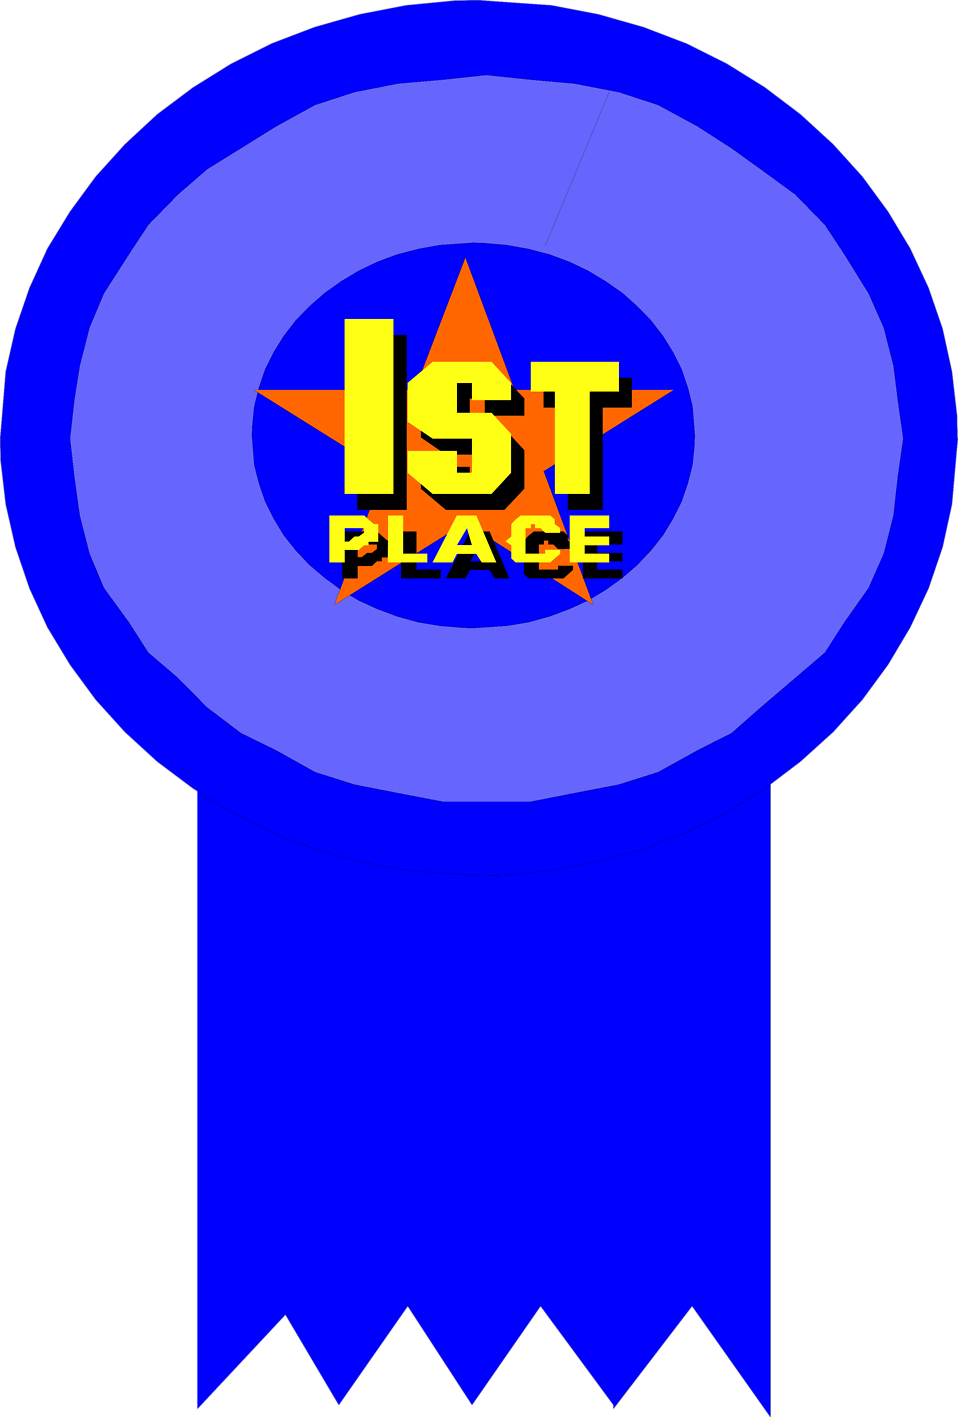 1st Place Award Ribbon Clipart-1st place award ribbon clipart-1